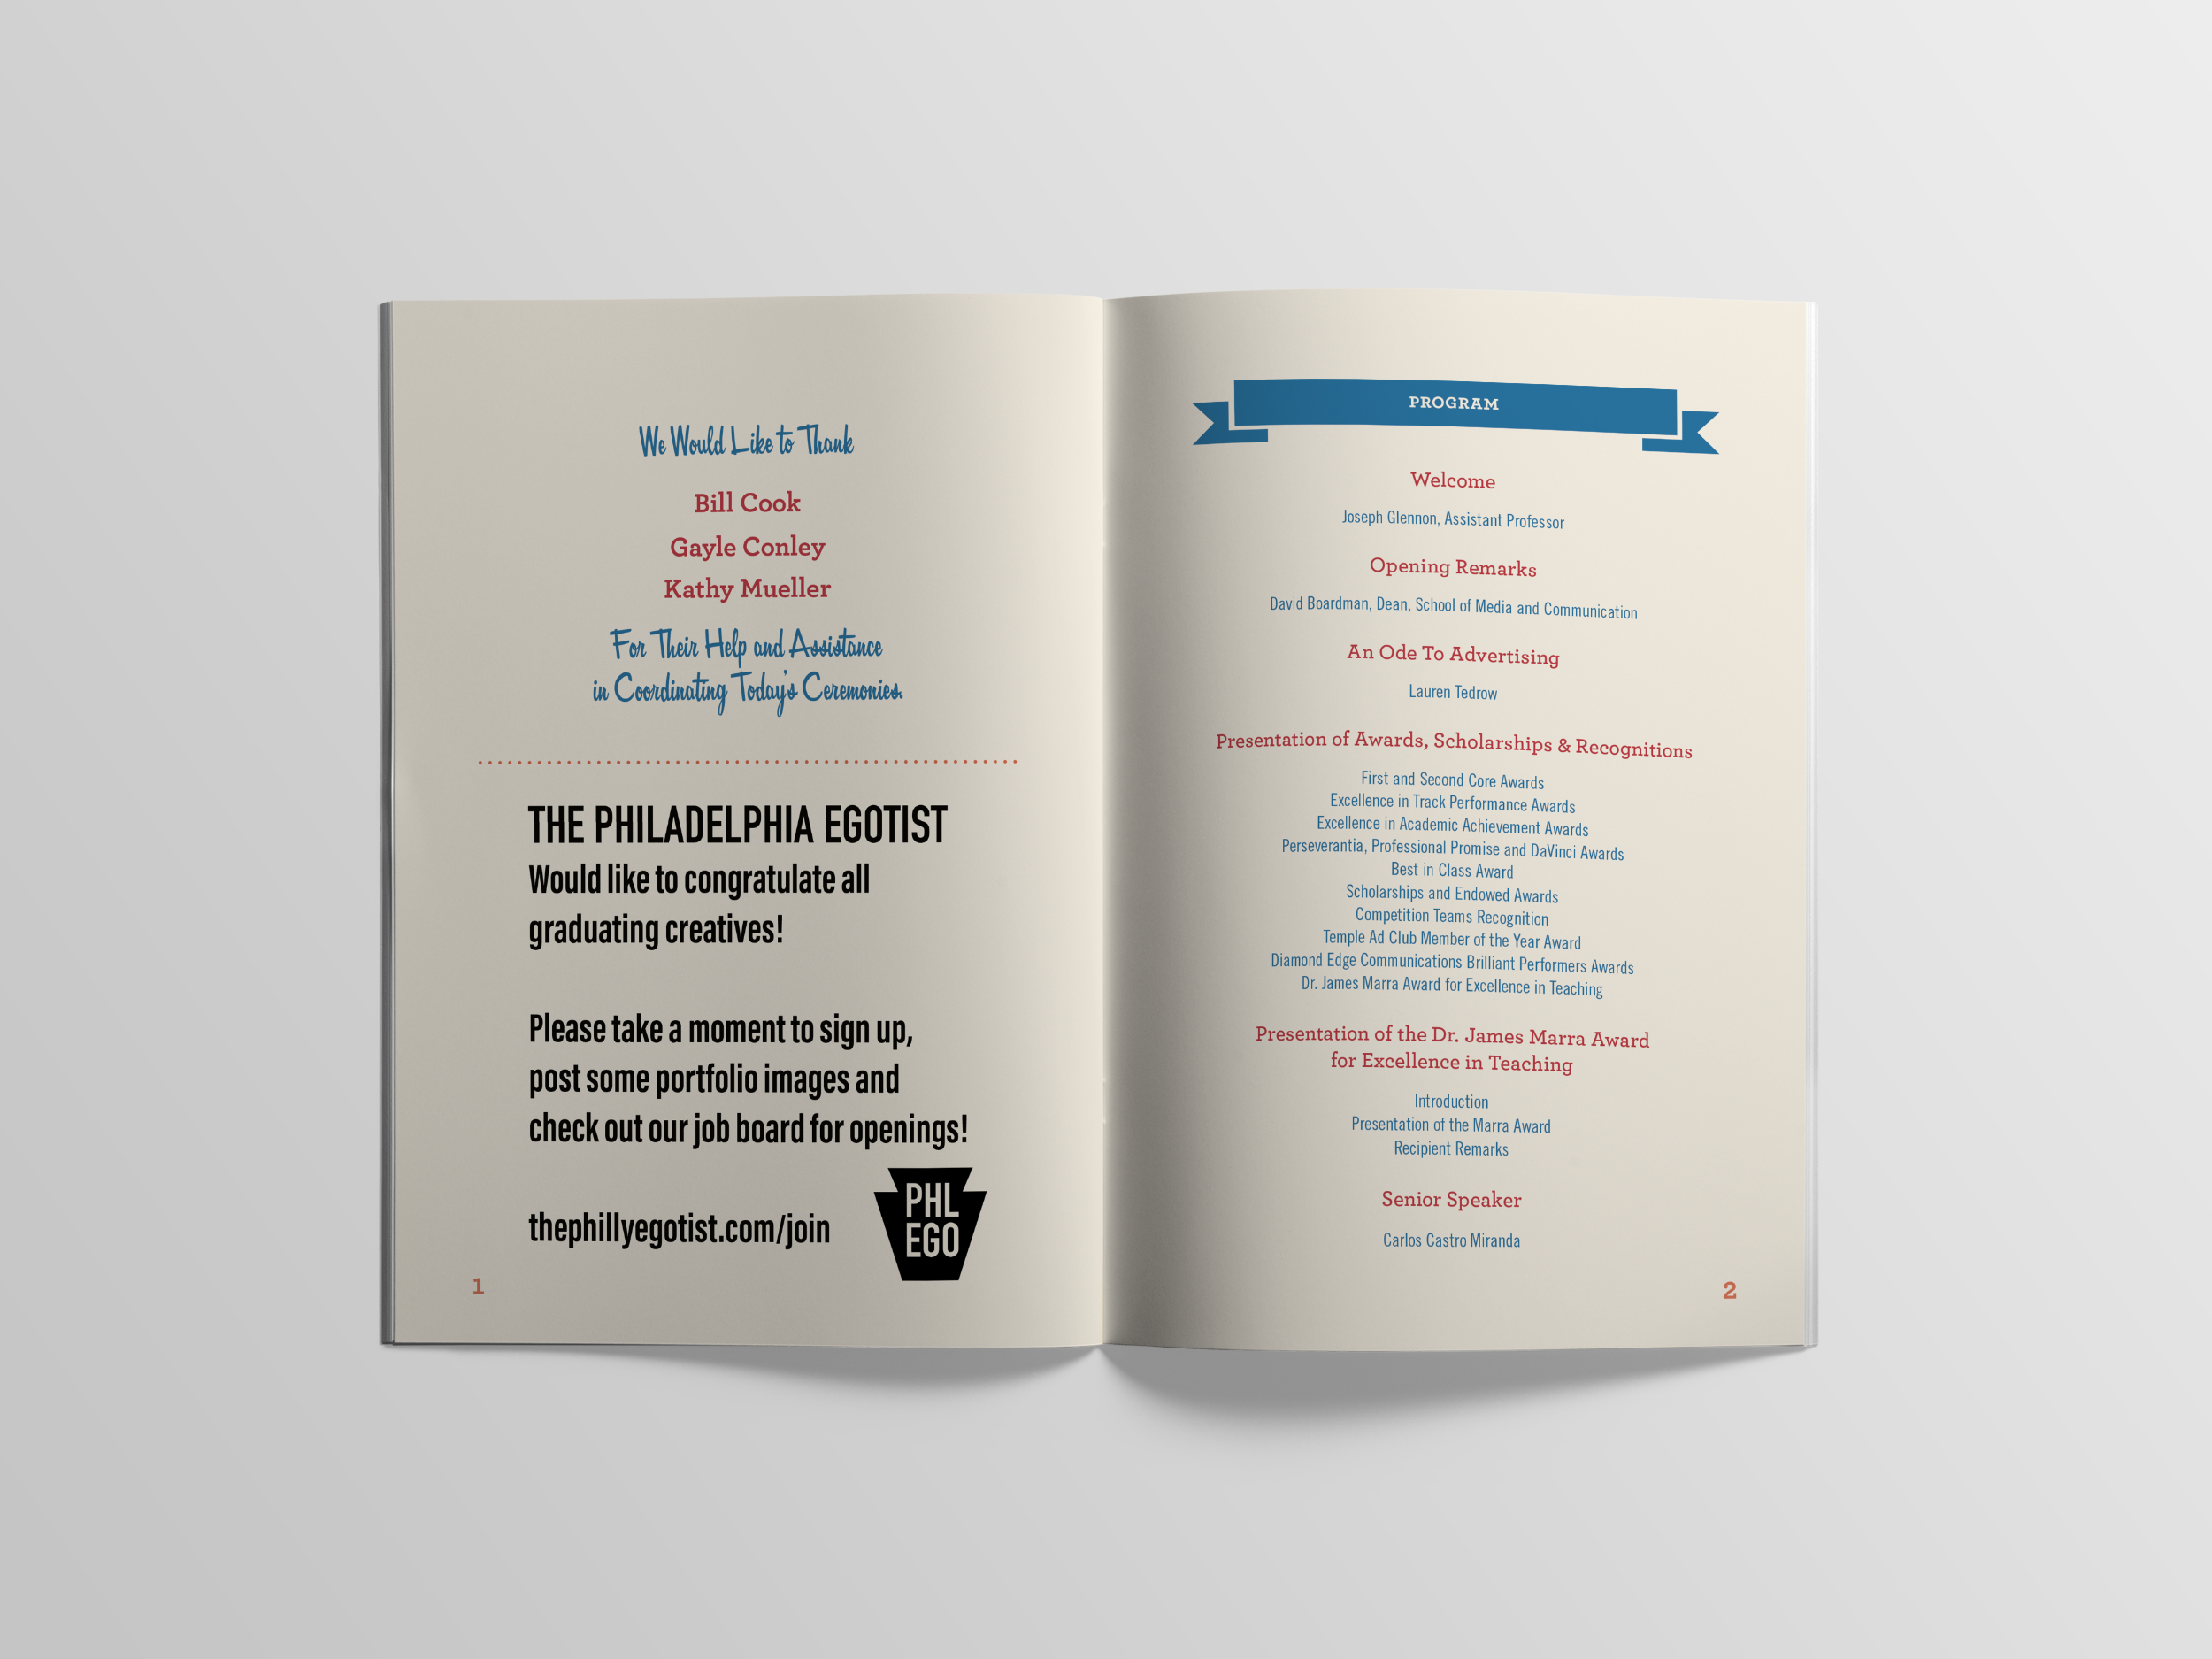 TADA_Booklet_Open1.png